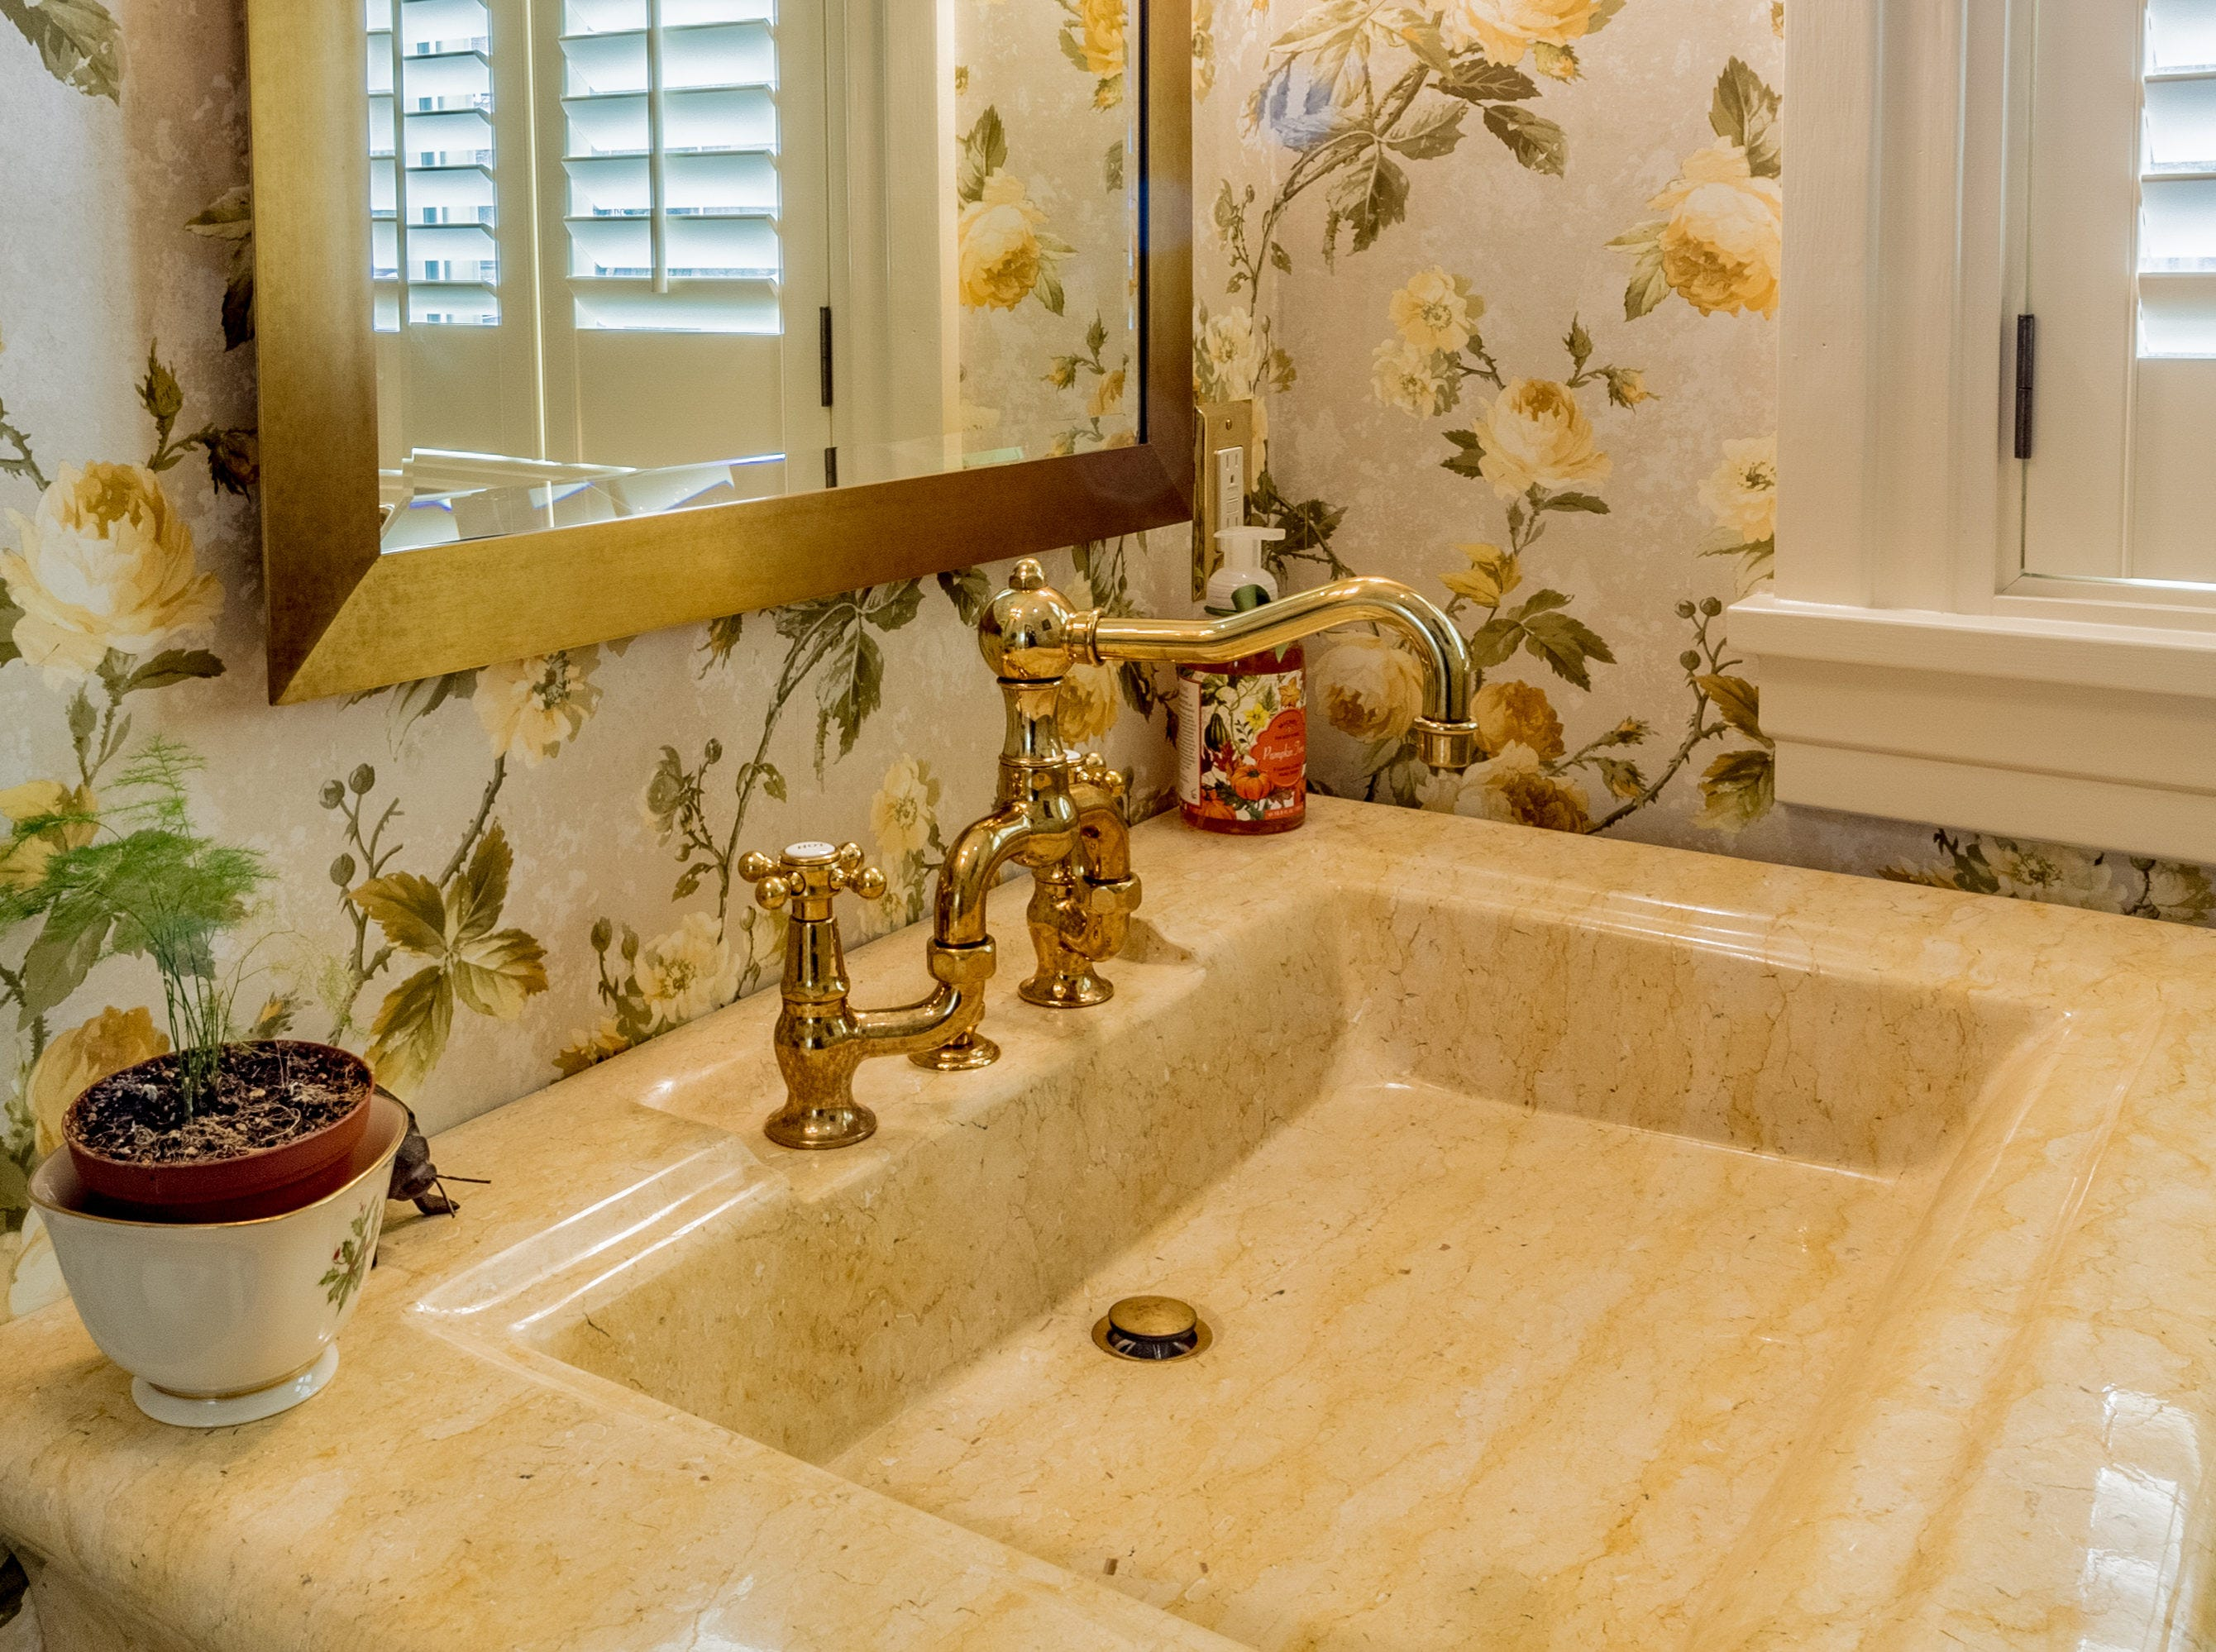 A pedestal sink with a gold faucet is one of the details that makes the powder room shine.